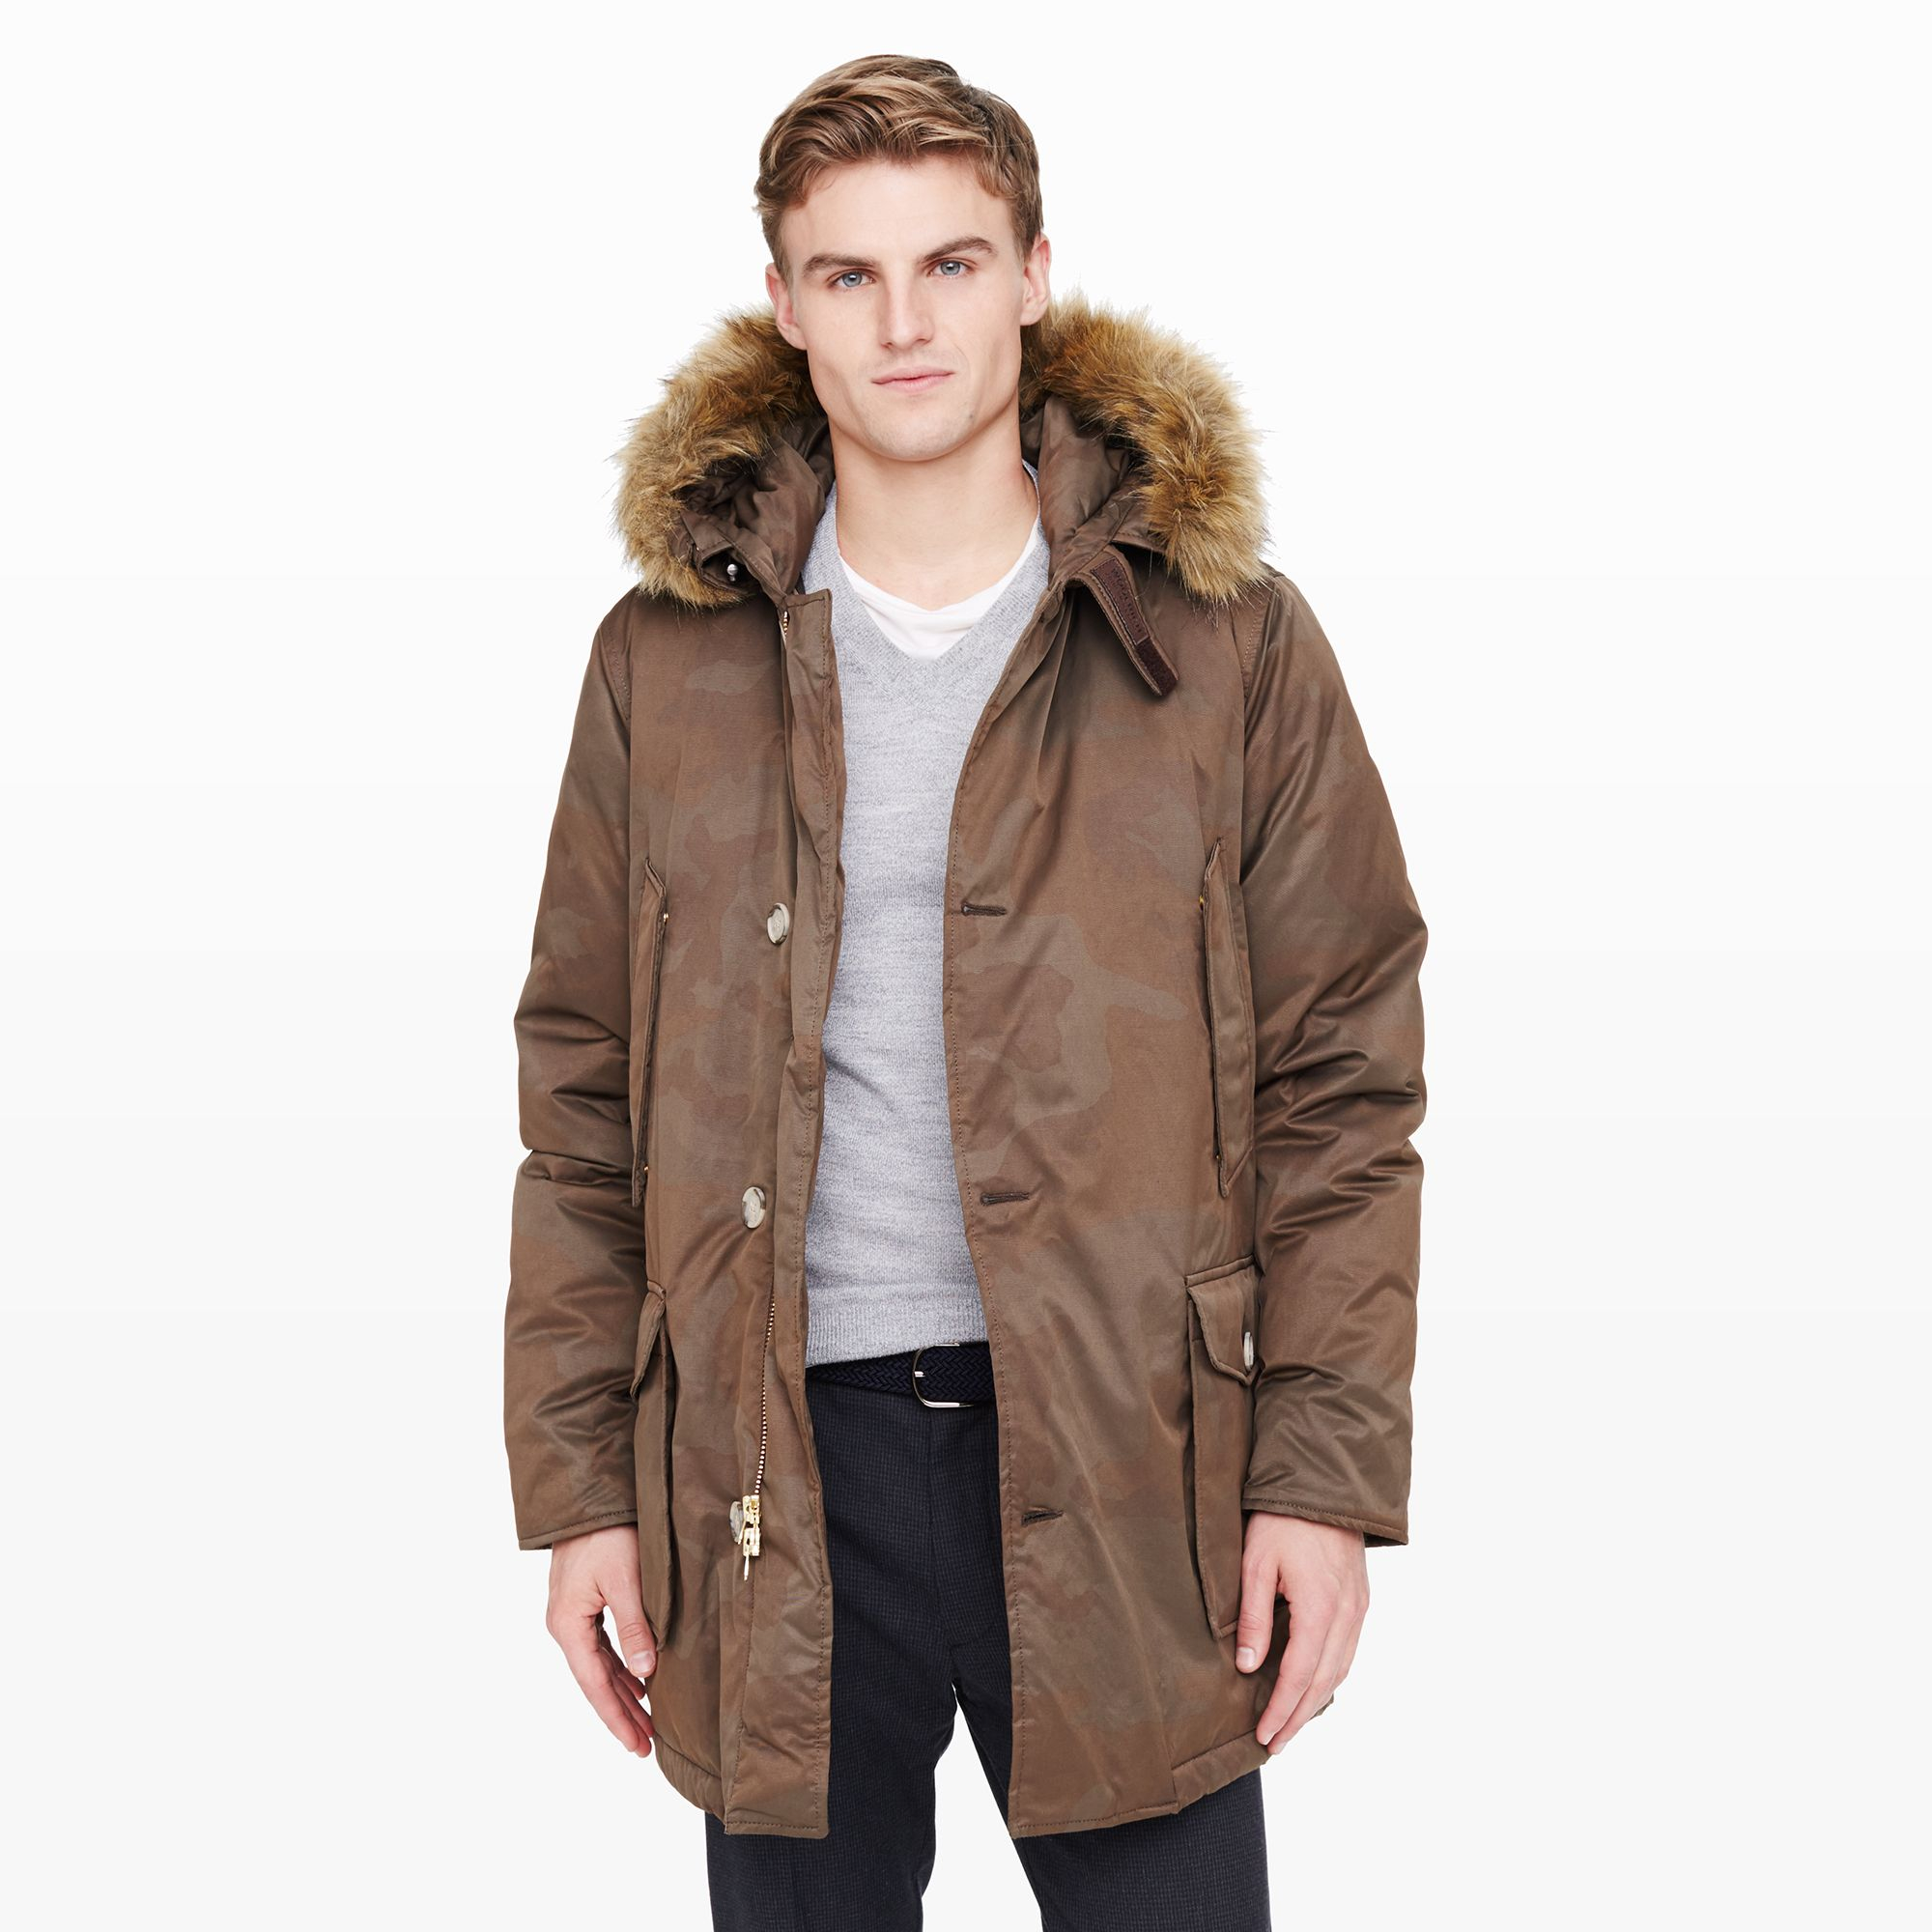 Lyst - Club Monaco Woolrich Camo Arctic Parka in Brown for Men 3f9998b05a